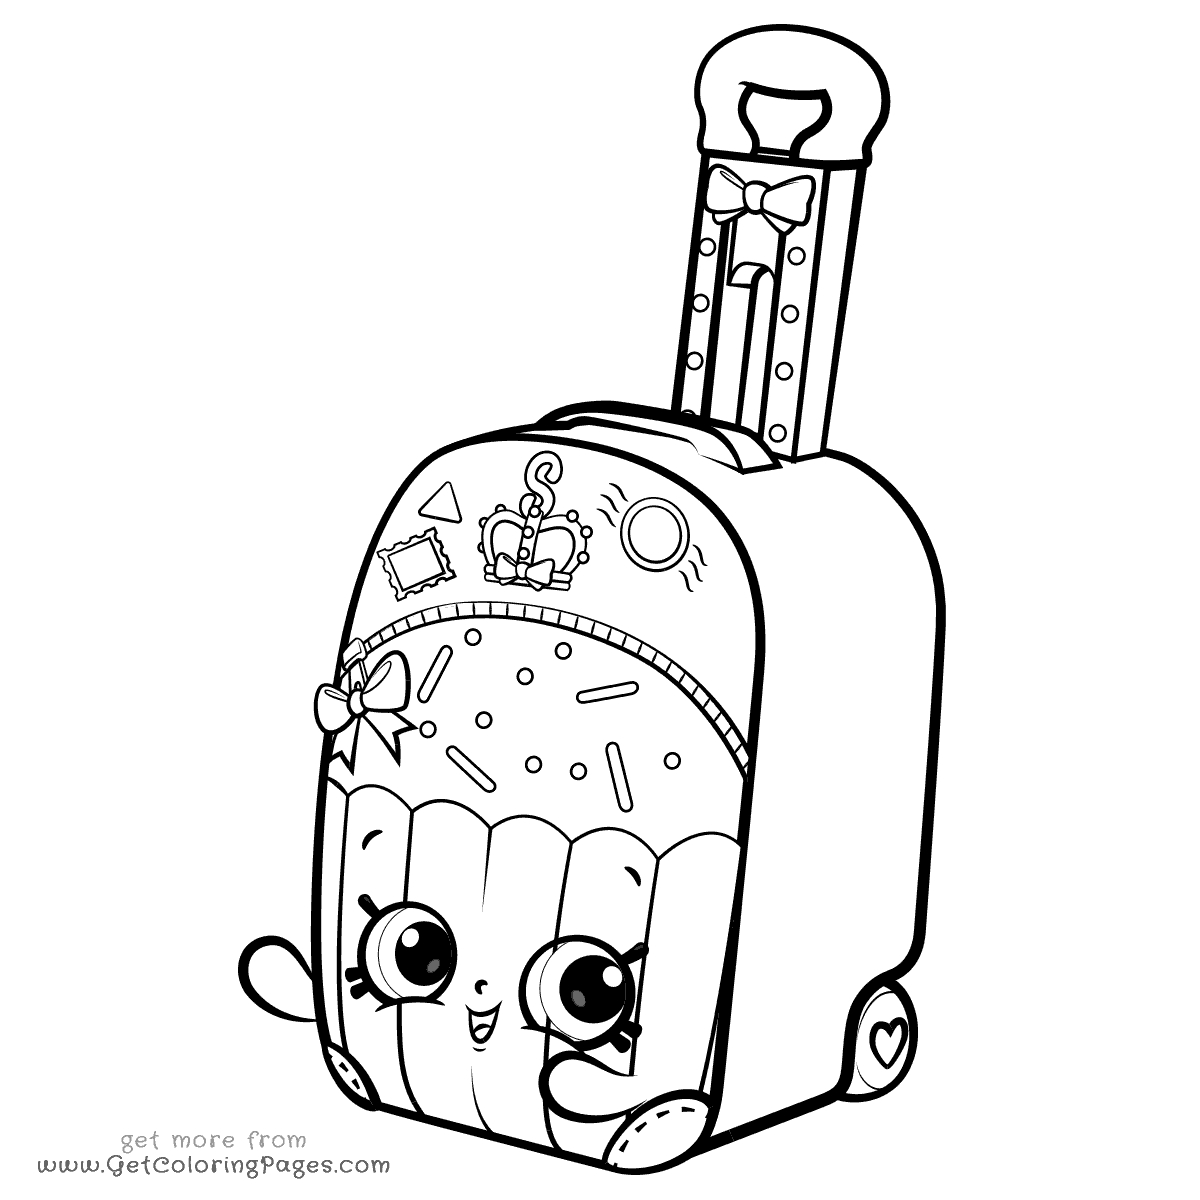 28 Shopkins Shoppies Coloring Pages Printable Free Coloring Pages